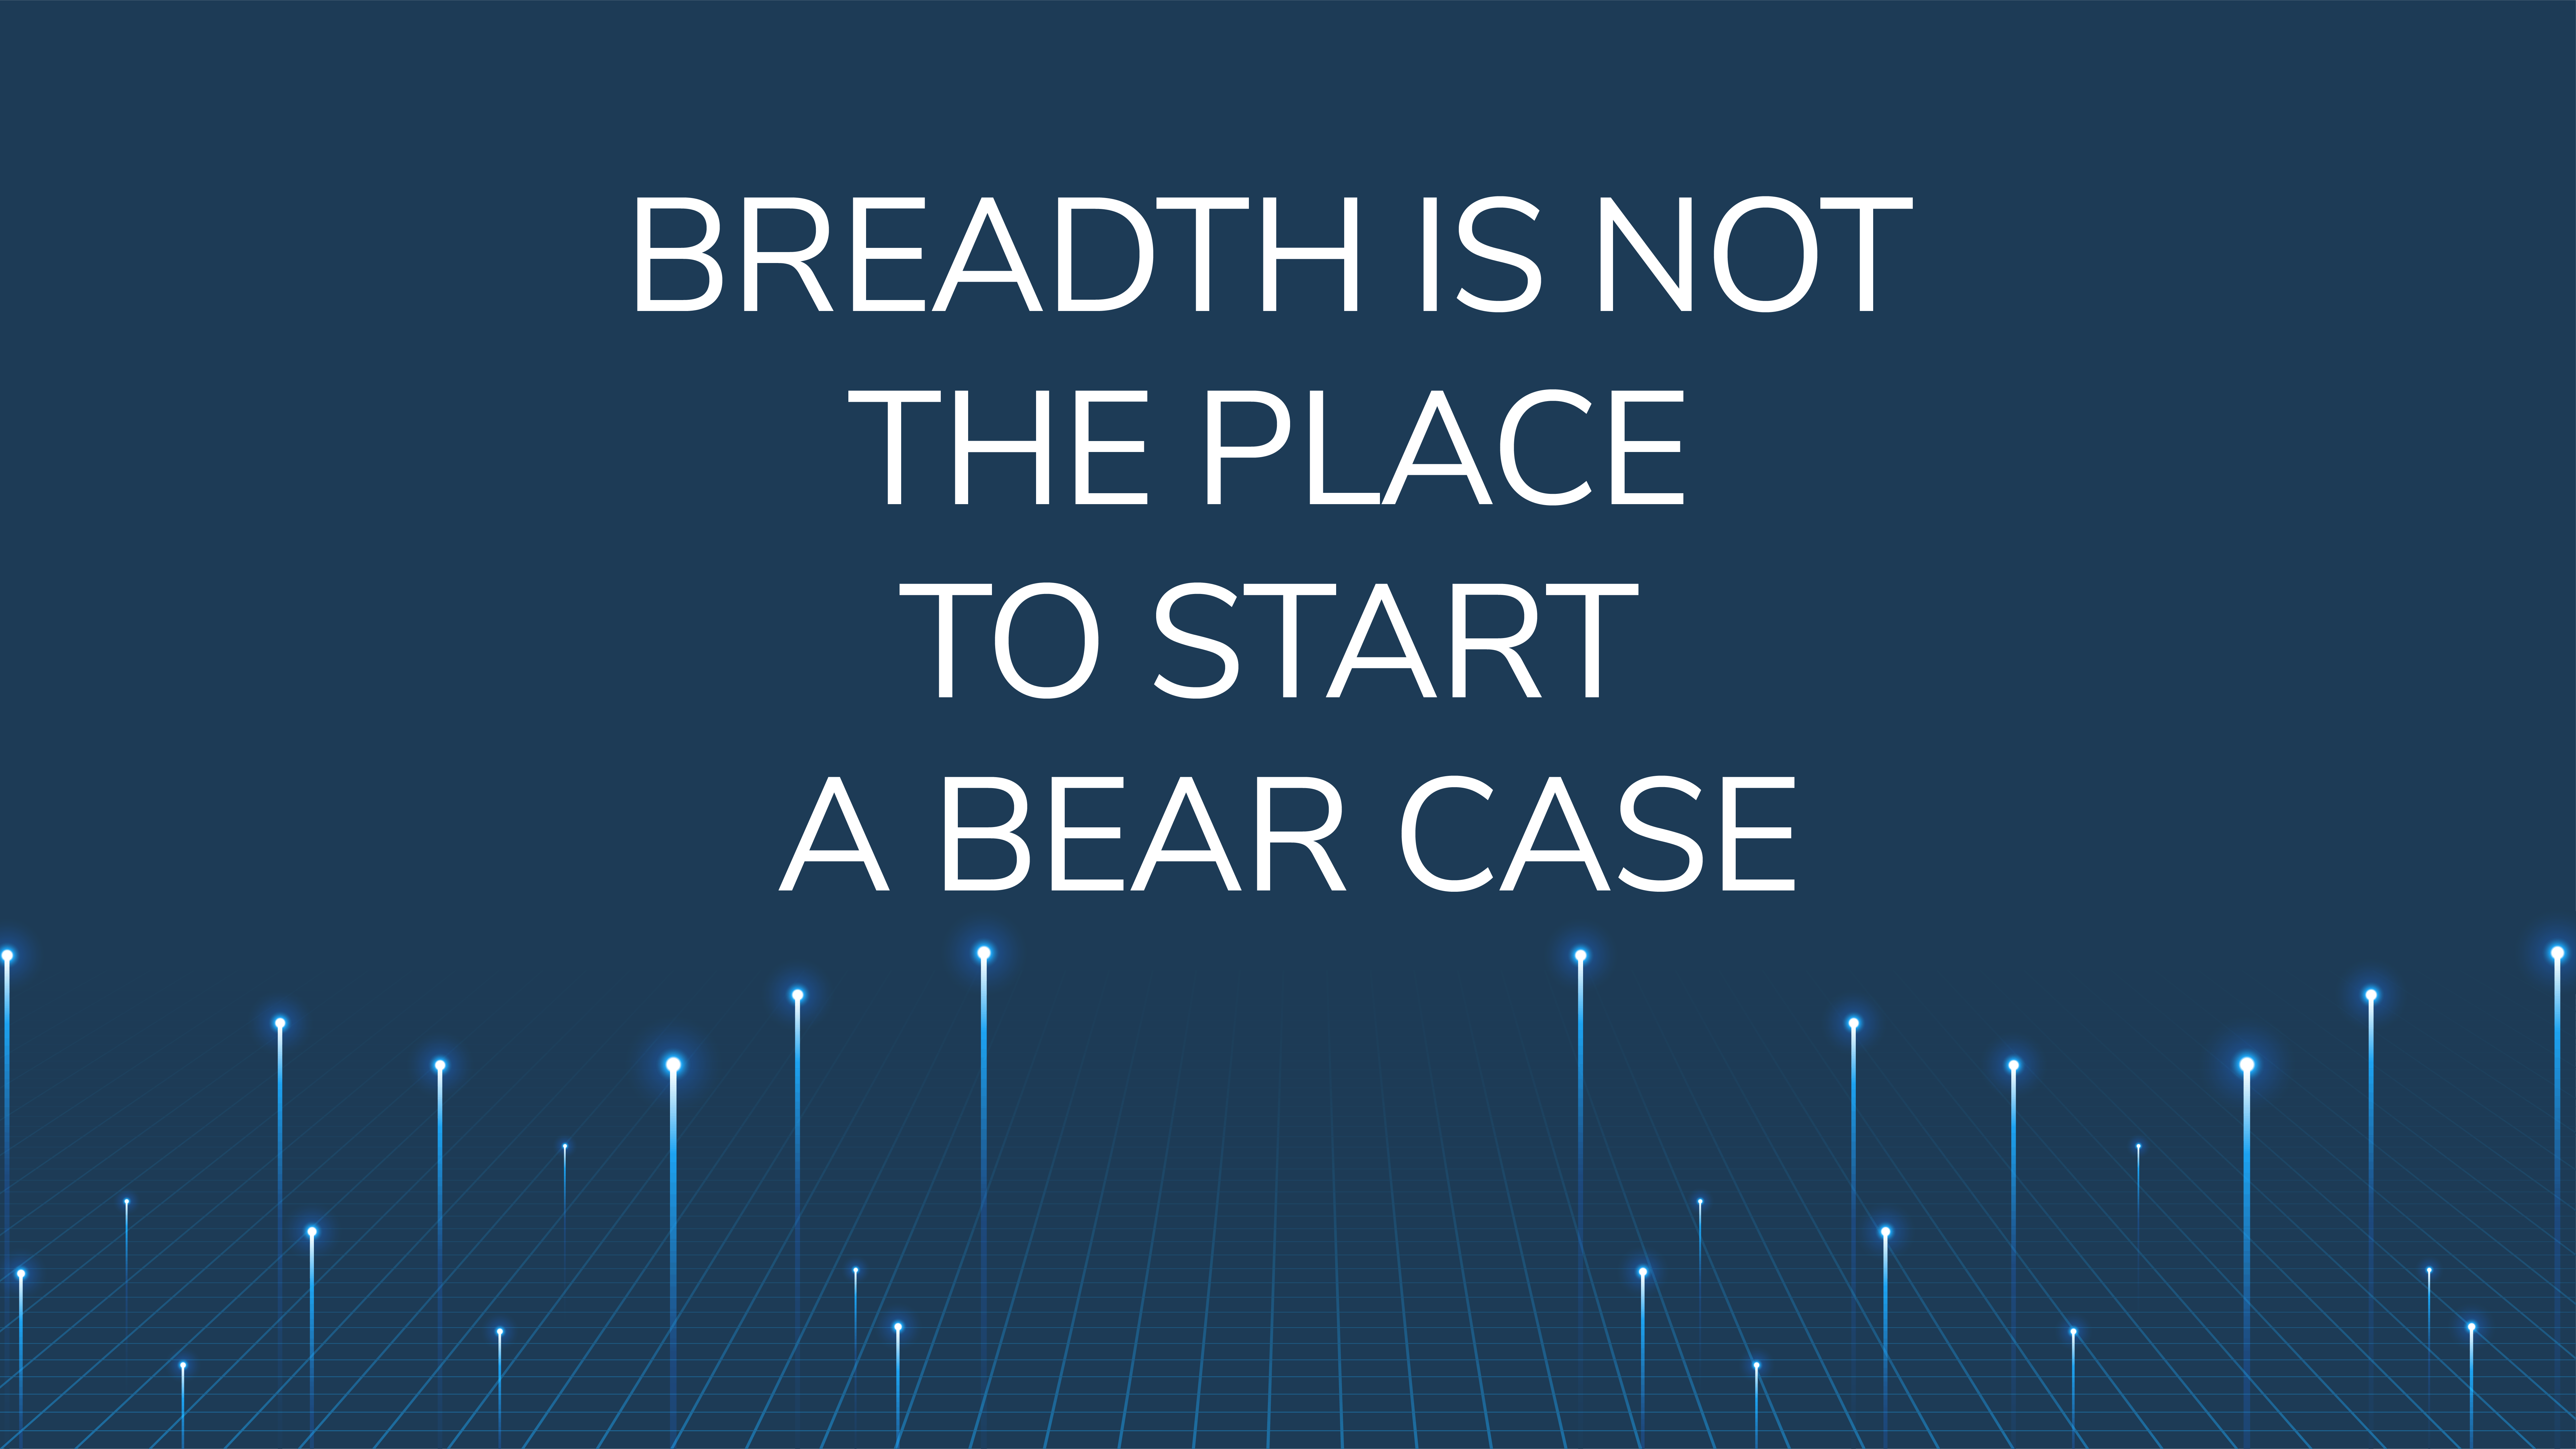 Breadth is Not the Place to Start a Bear Case